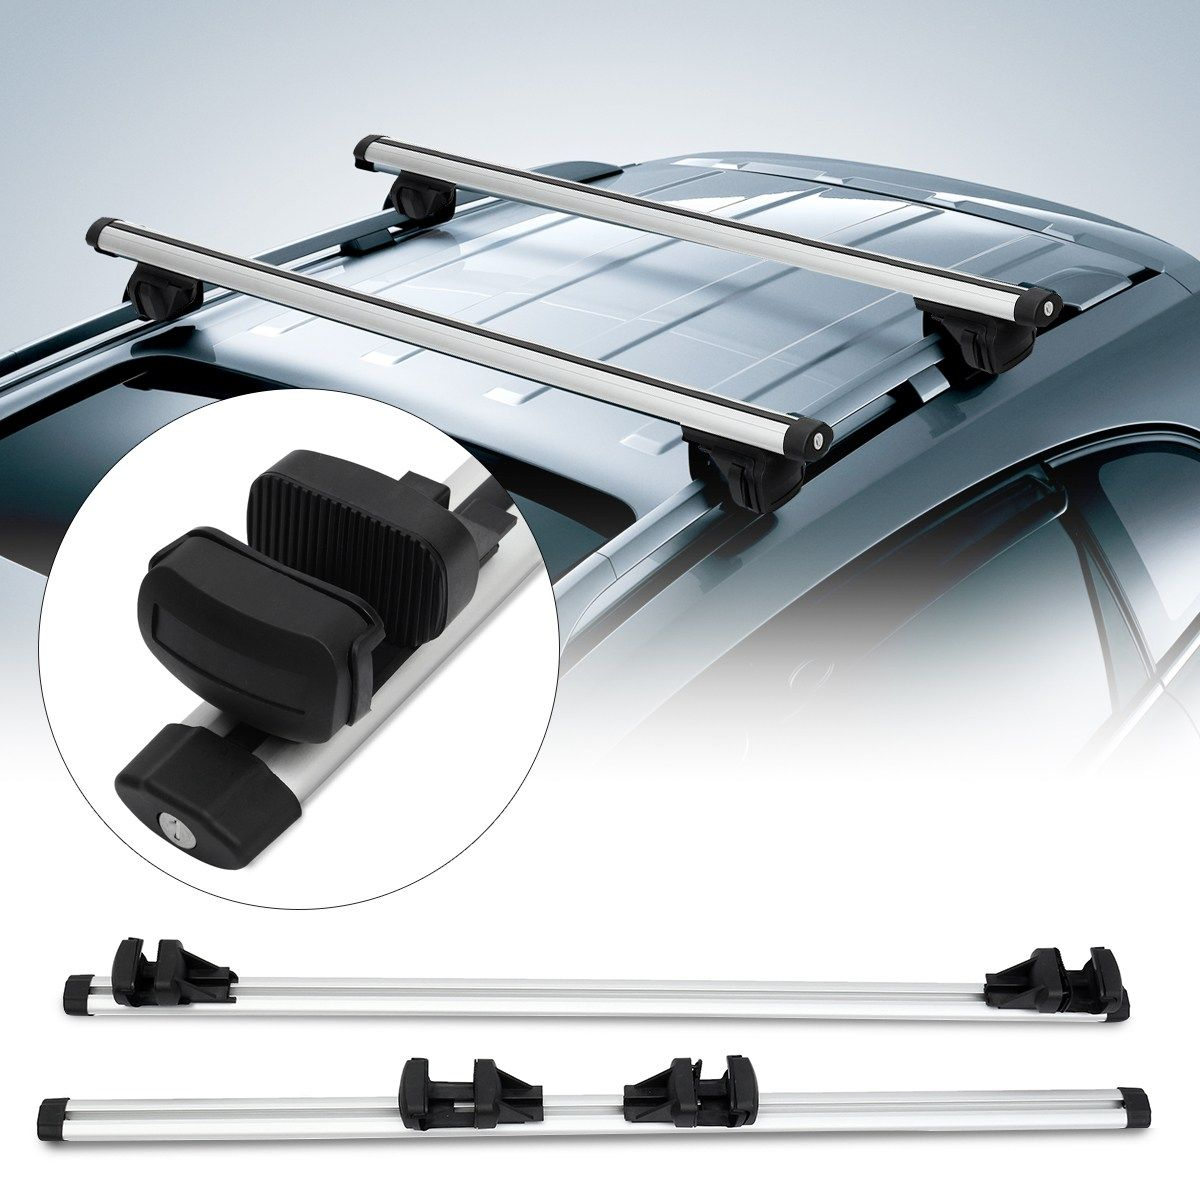 Cheap Rack Cross Bars Buy Quality Roof Rack Cross Bars Directly From China Cross Bar Suppliers 130cm Universal Car R Car Roof Racks Roof Rack Luggage Carrier